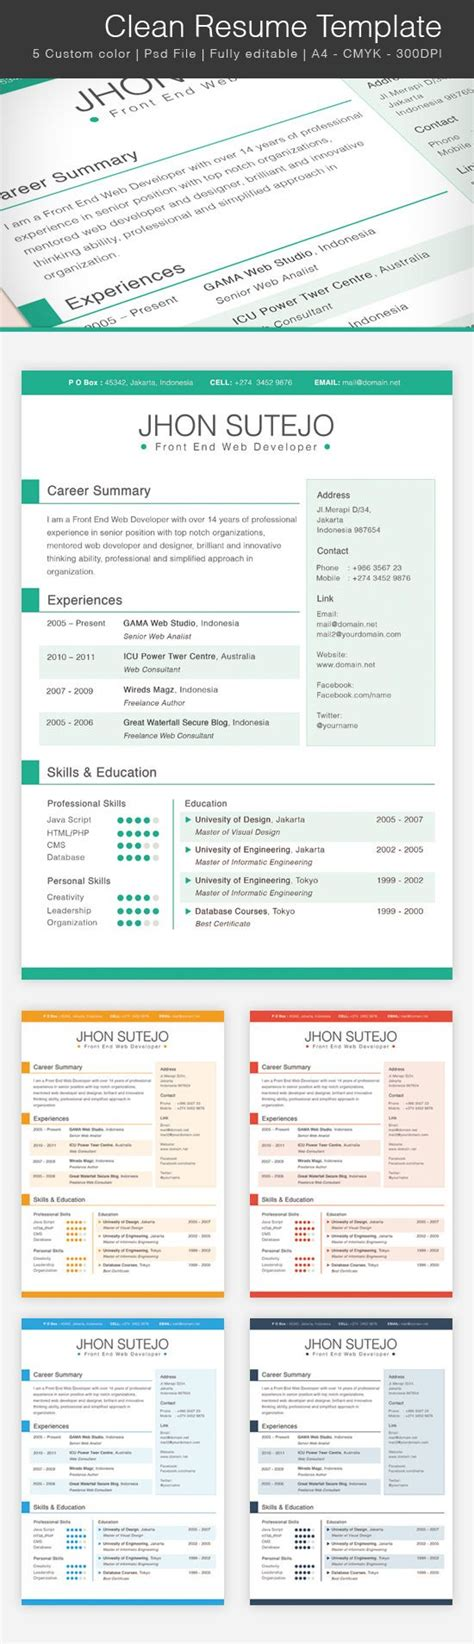 39 best images about photoshop resume templates on